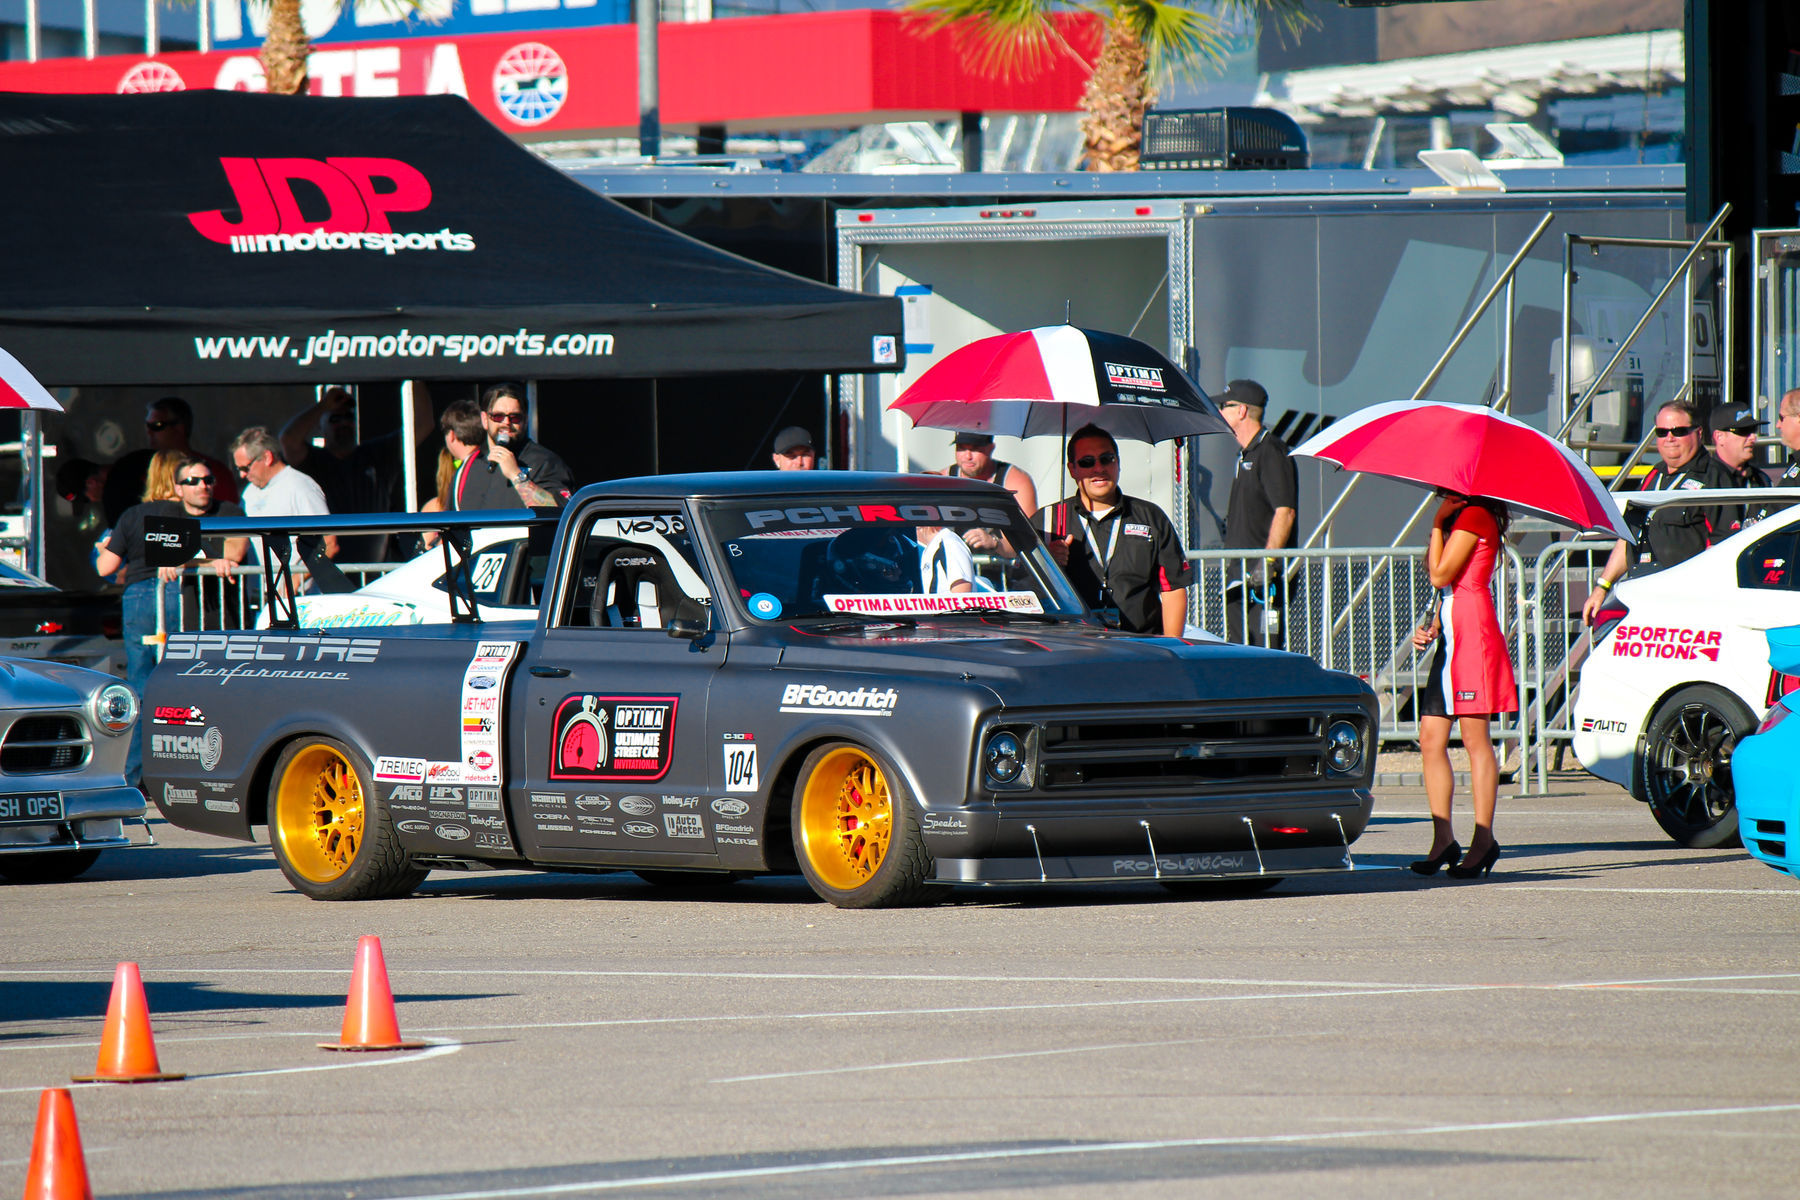 1972 Chevrolet C-10 | 1972 Chevy C10-R Spectre SEMA Show Booth Truck